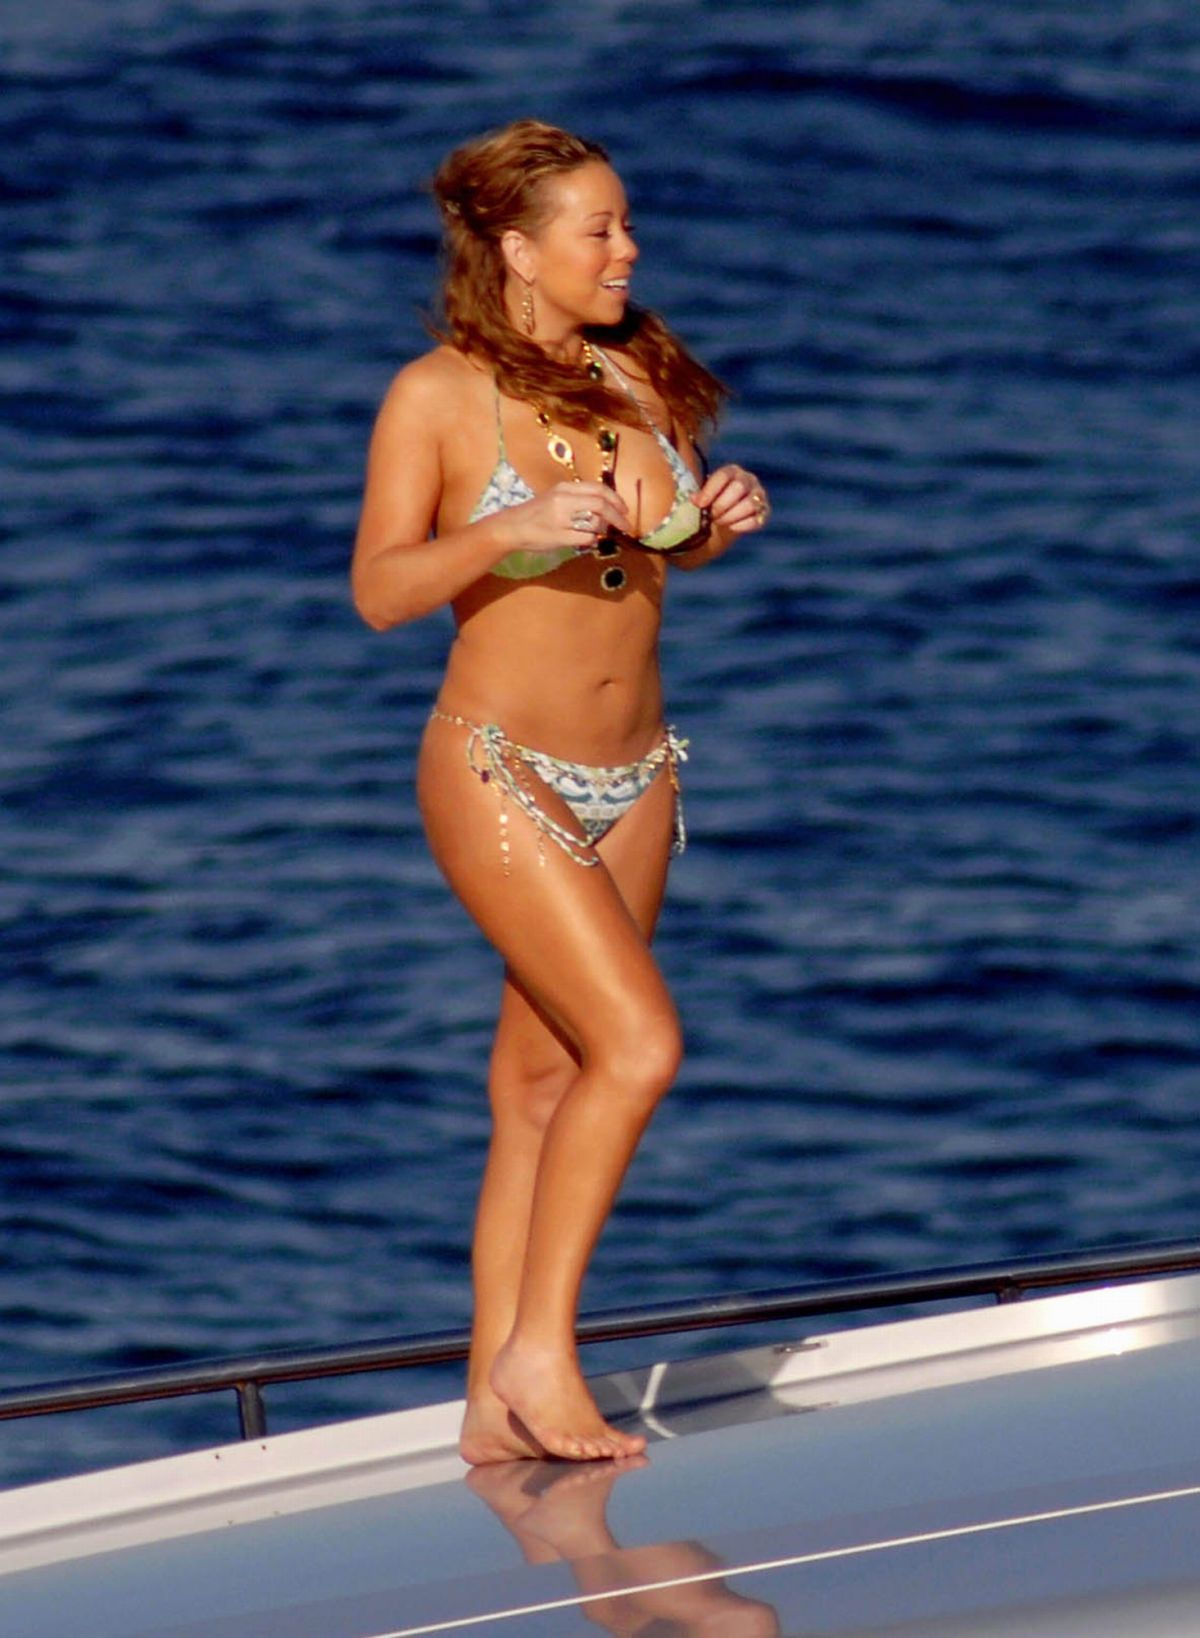 Bikini carey links mariah